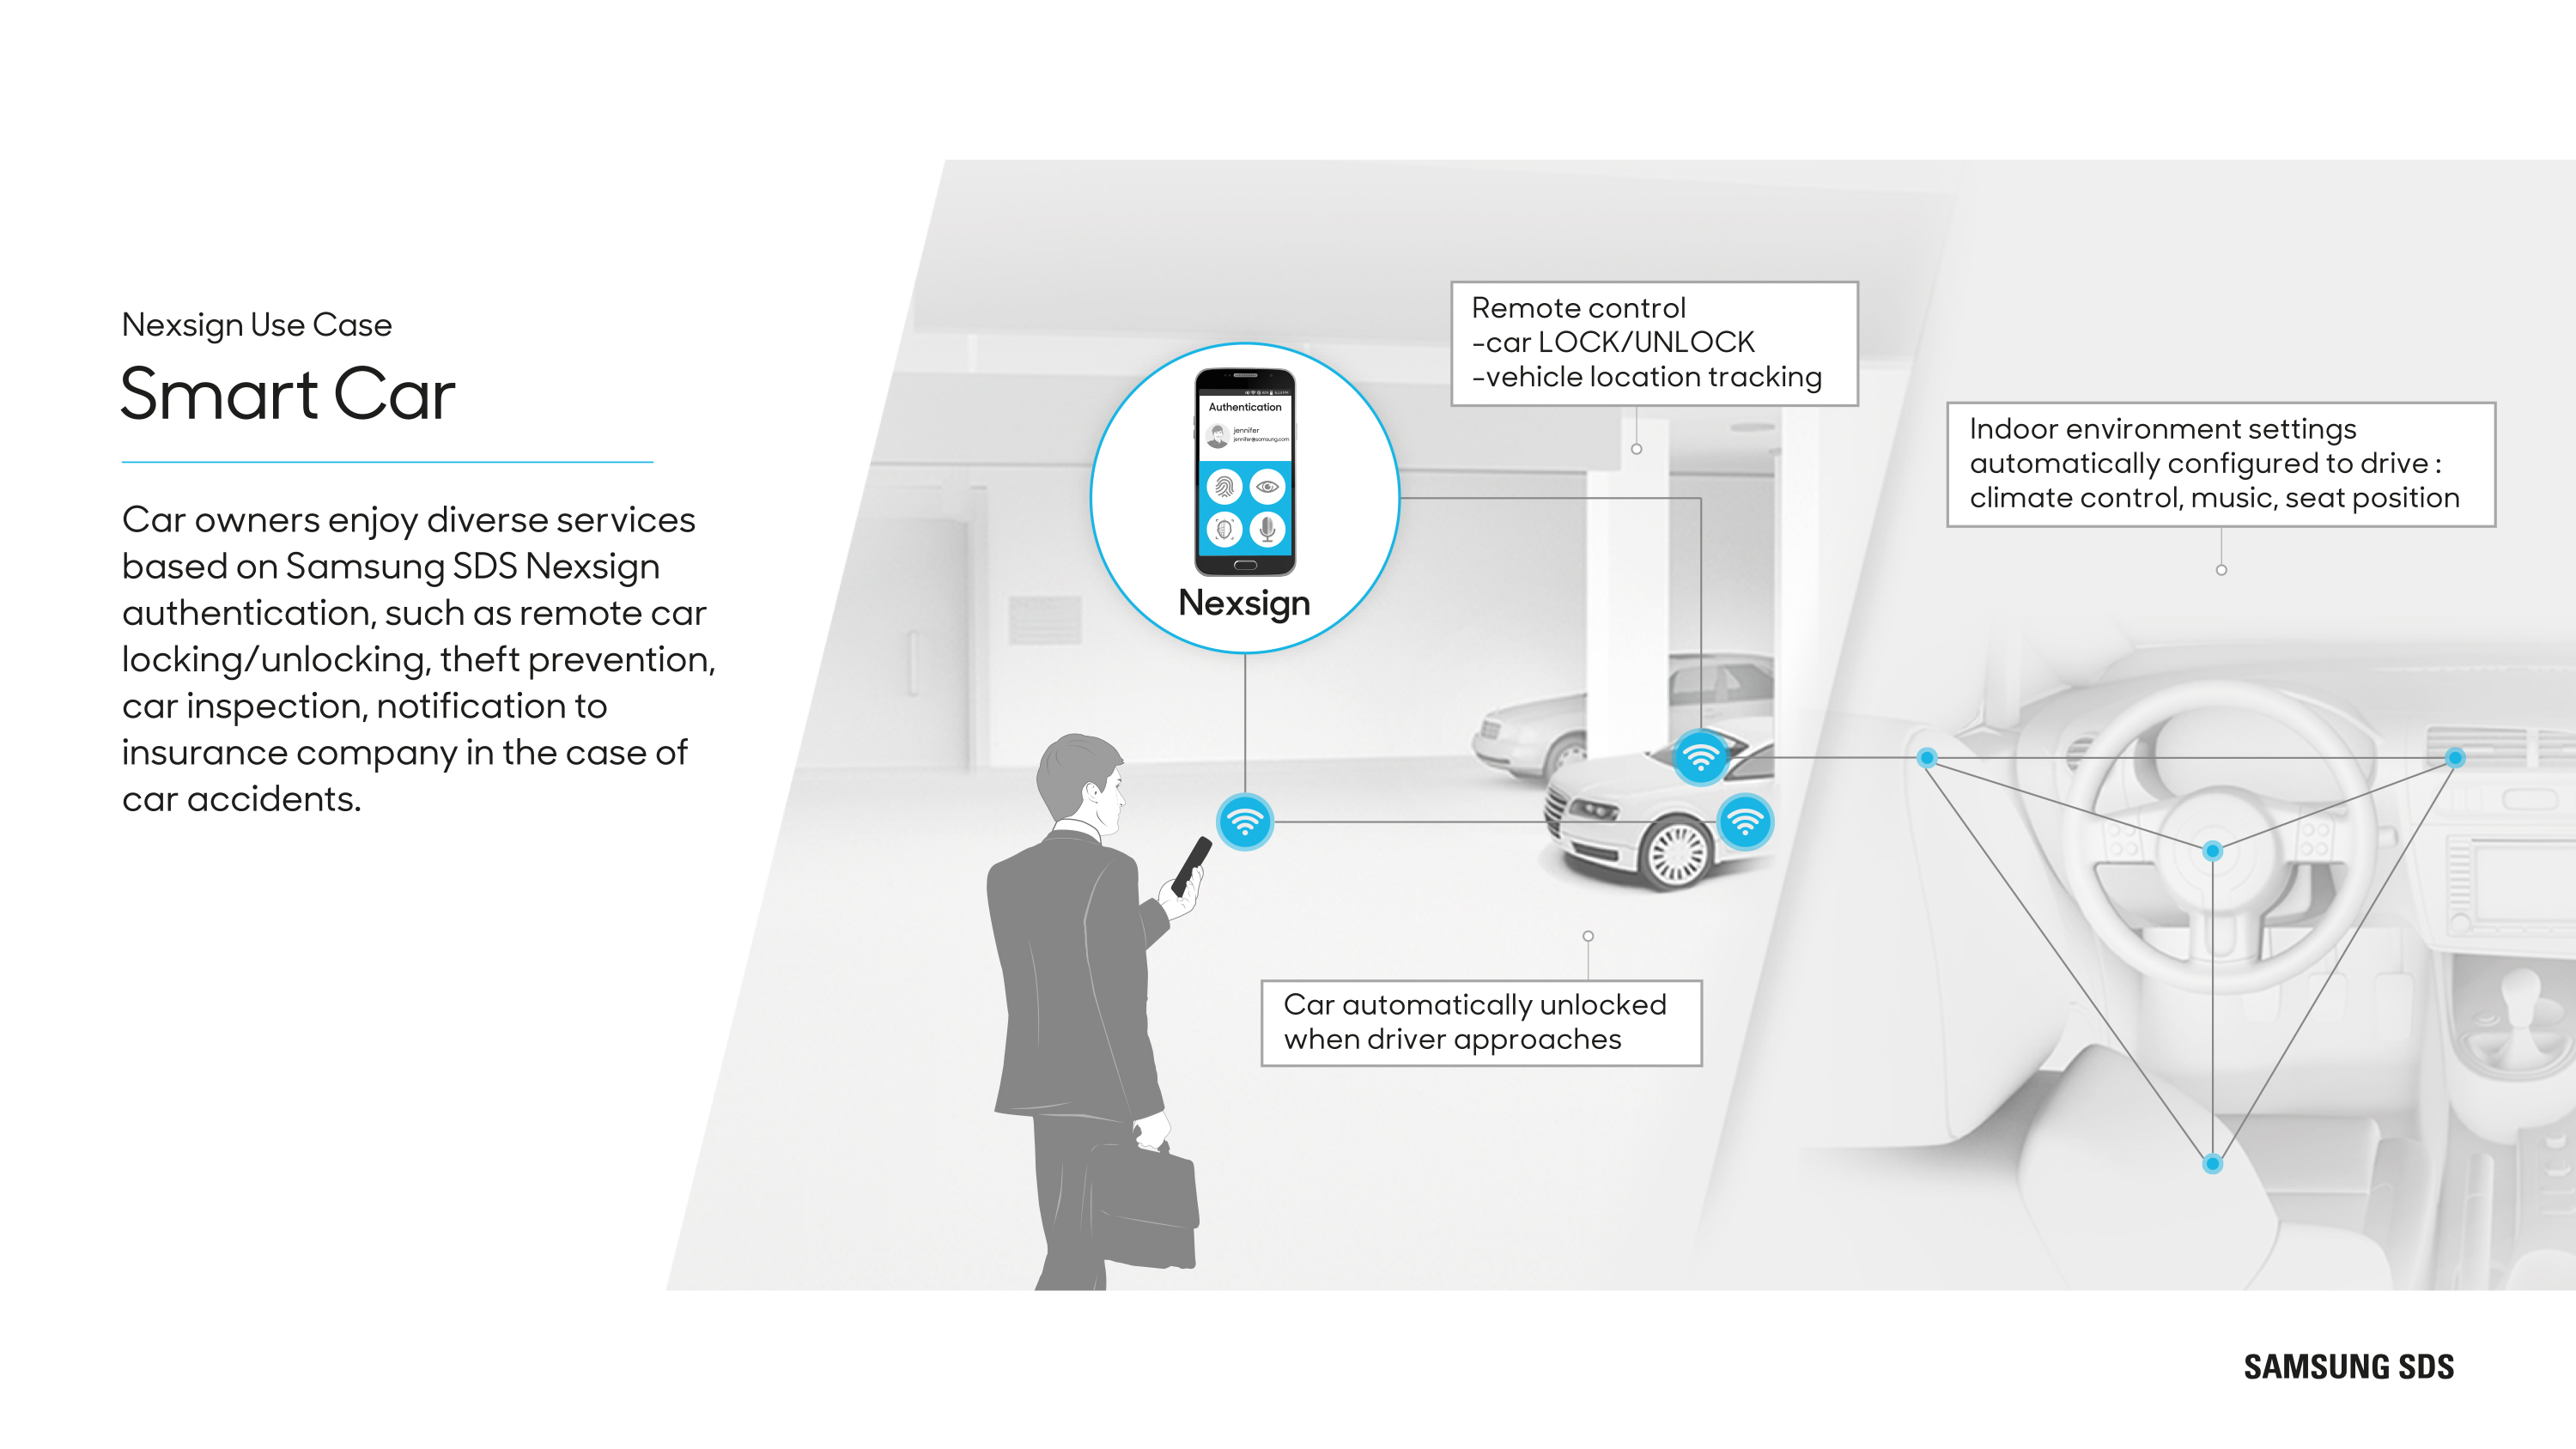 Smart Car Car owners enjoy diverse services based on Samsung SDS Nexsign authentication, such as remote car locking/unlocking, theft prevention, car inspection, notification to insurance company in the case of car accidents.